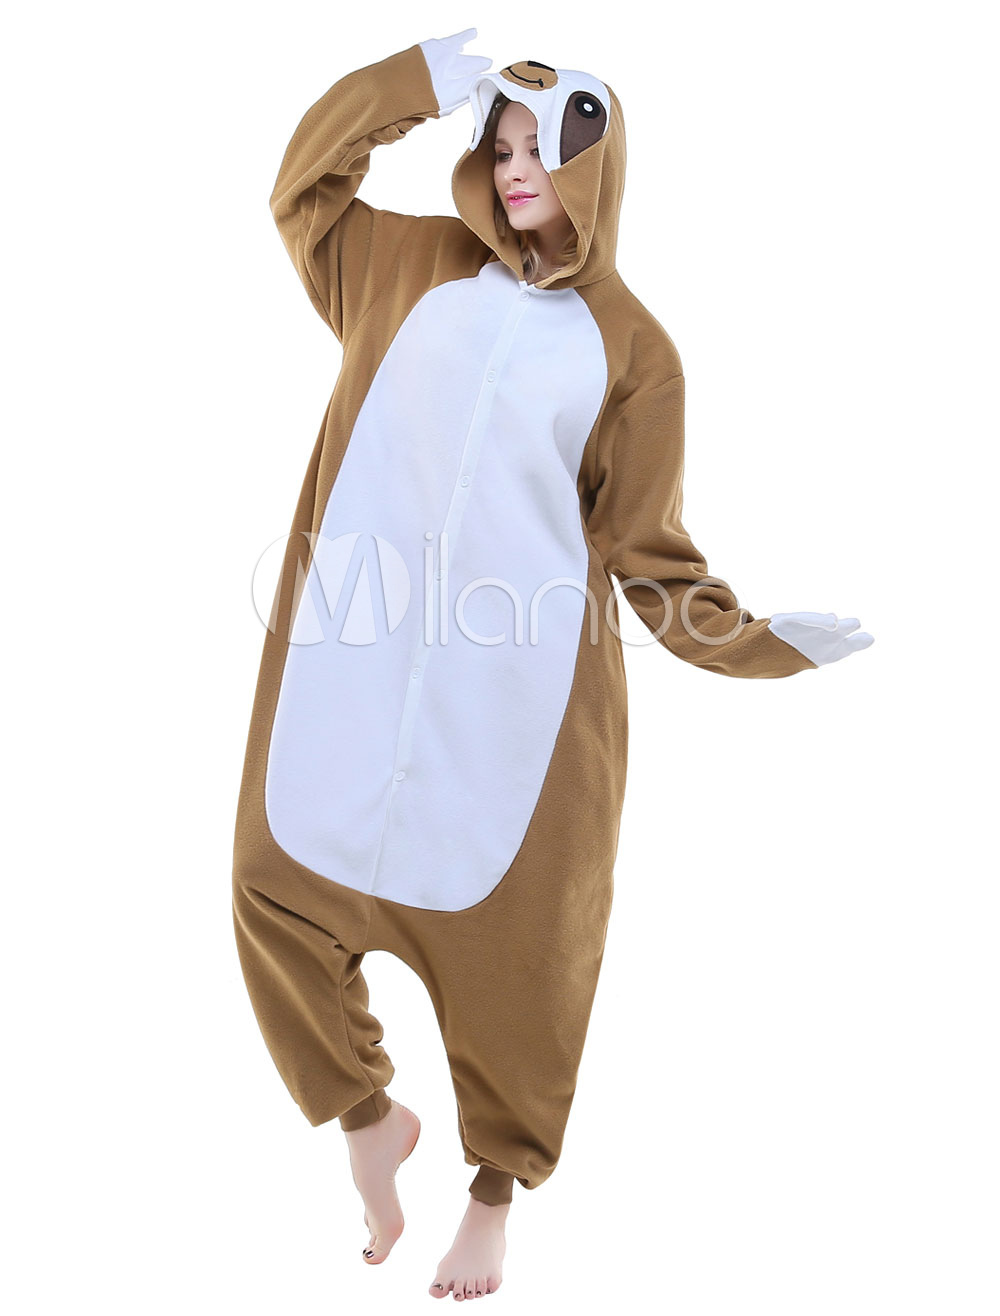 2bb2e7167796 Kigurumi Pajamas Sloth Onesie Adults Flannel Unisex Sleepwear Animal  Costume Halloween - Milanoo.com